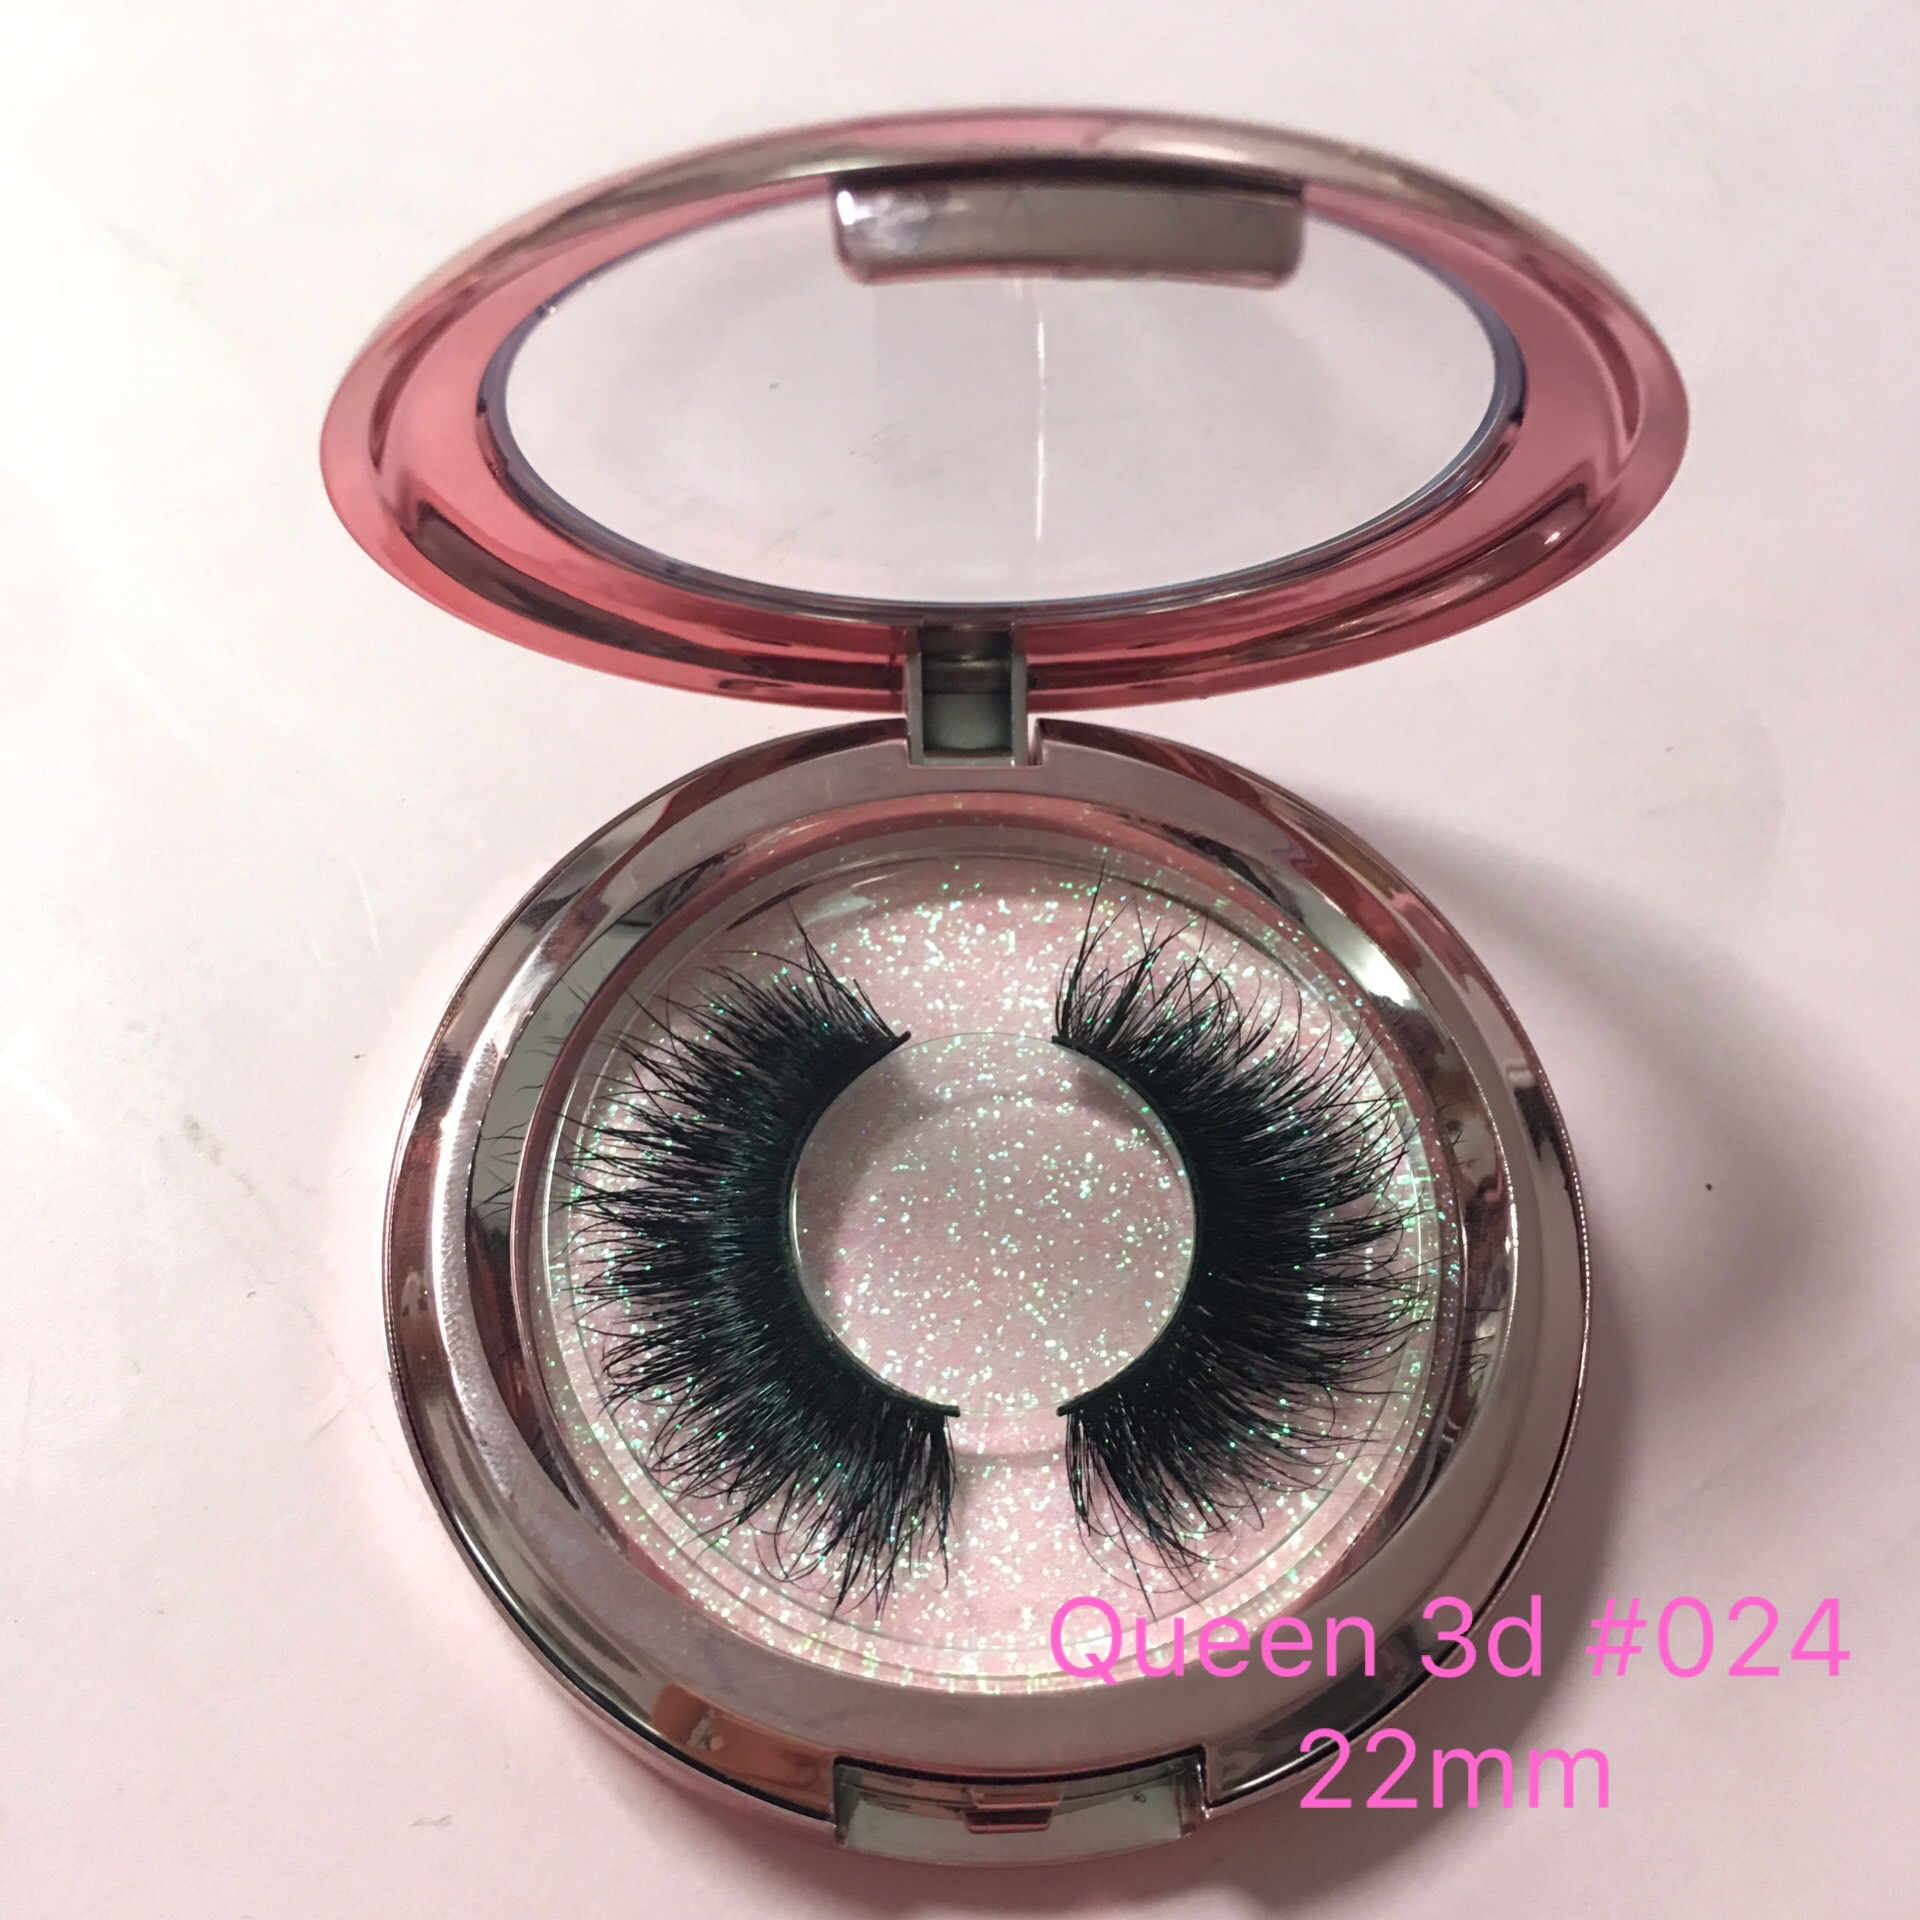 33458af5104 Please leave a message when mix lashes styles. About shipping: ship by  fedex 2-4days ship by epack 7-15days